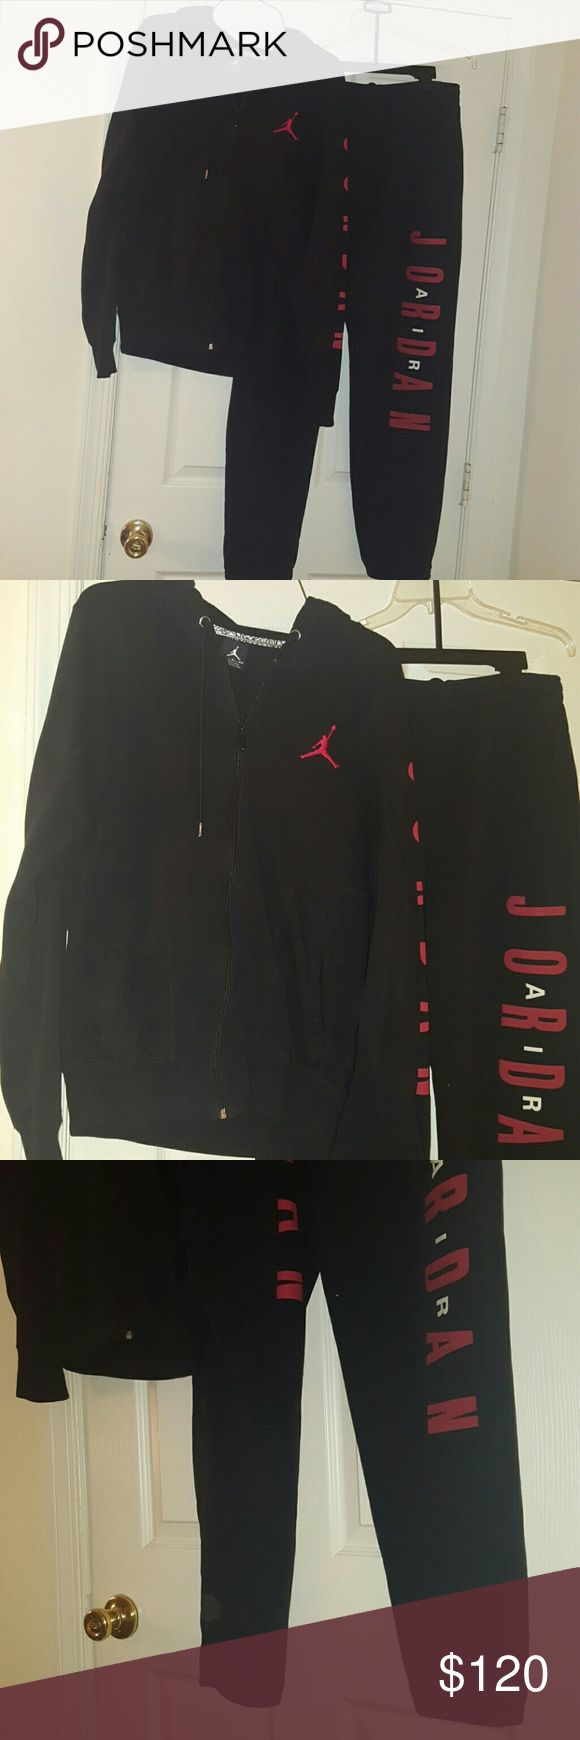 Nike Air Jordan men's / womens sweat suit black This is a men's Nike Air Jordan sweat suit I purchased it for myself smallest jacket I could get was a man small and that was a little too big for me the pants are medium and they are also too big it would fit a large woman both jacket and pants. Nike Air Jordan  Other